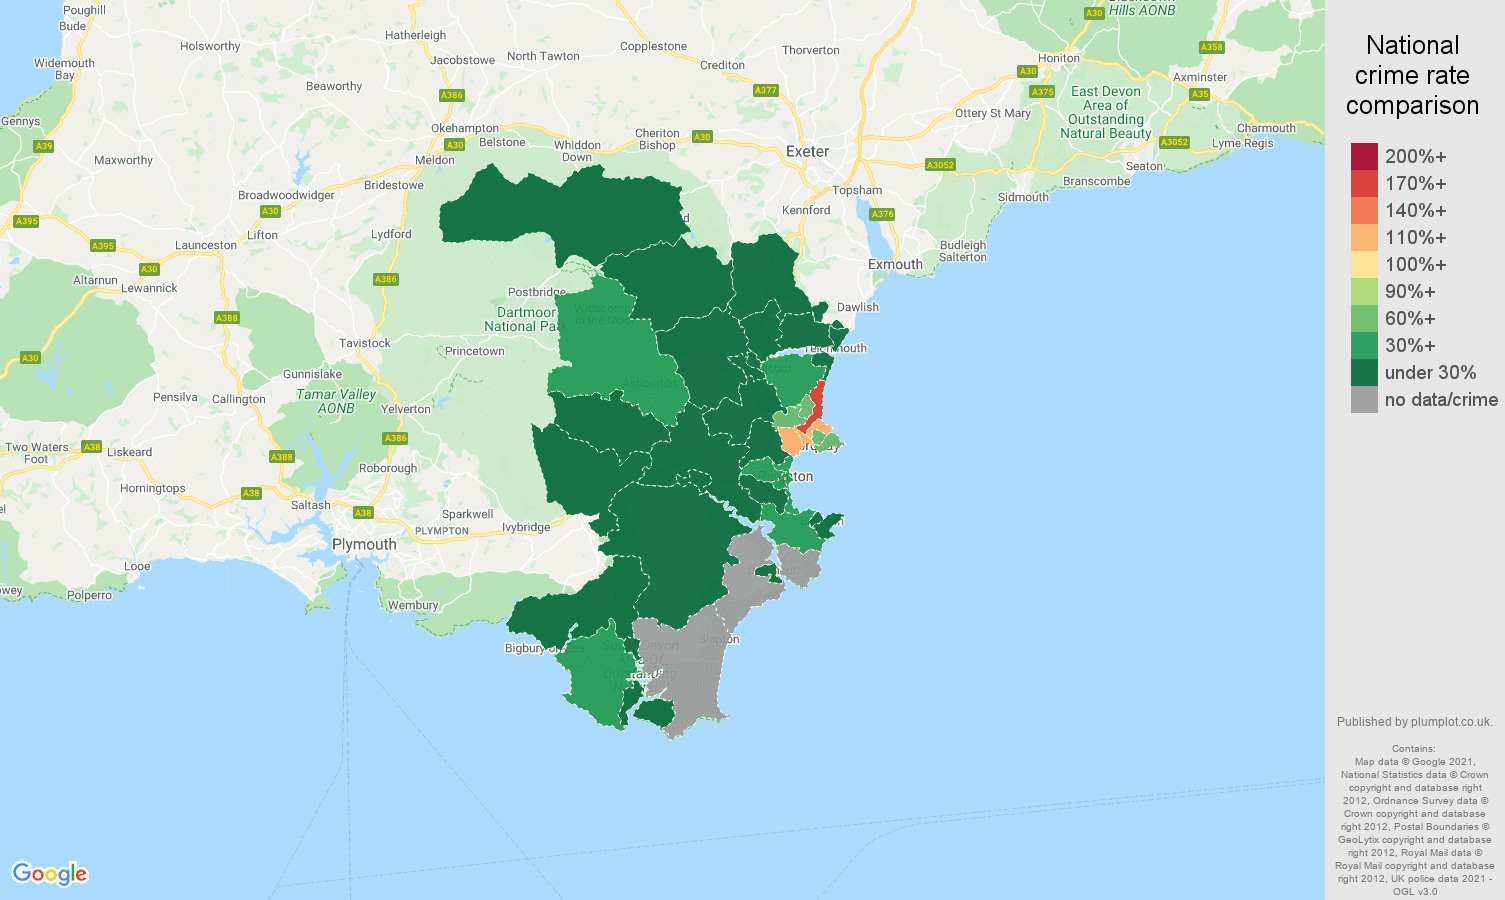 Torquay vehicle crime rate comparison map